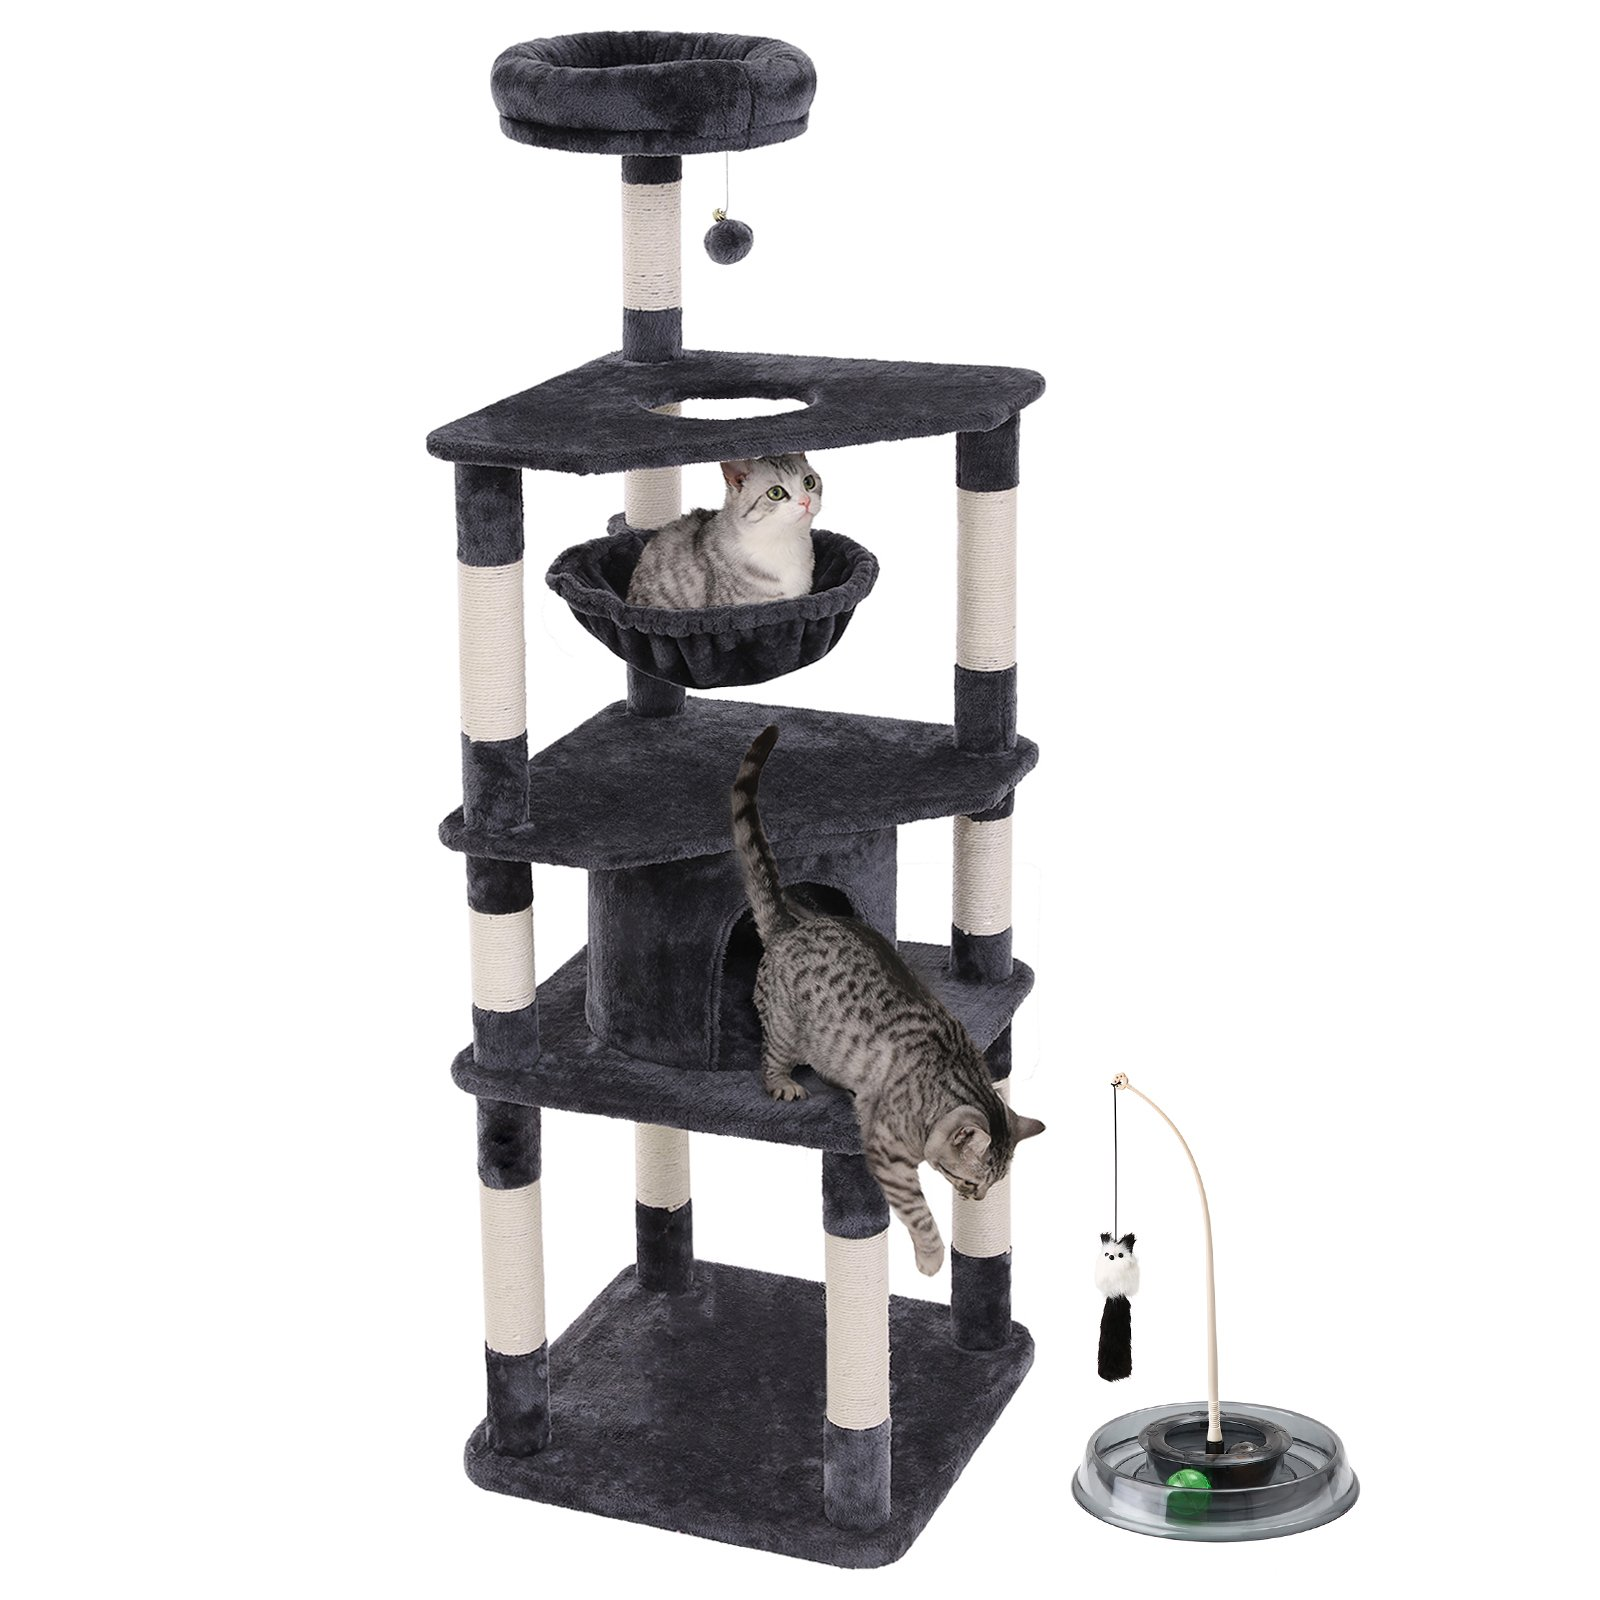 "SONGMICS 66"" Multi-Level Cat Tree with Cat Toys (Track Ball and Teaser Wand) Sisal-Covered Scratching Posts, Basket and Condo, cat tower for Kittens Smoky Gray UPCT66G"